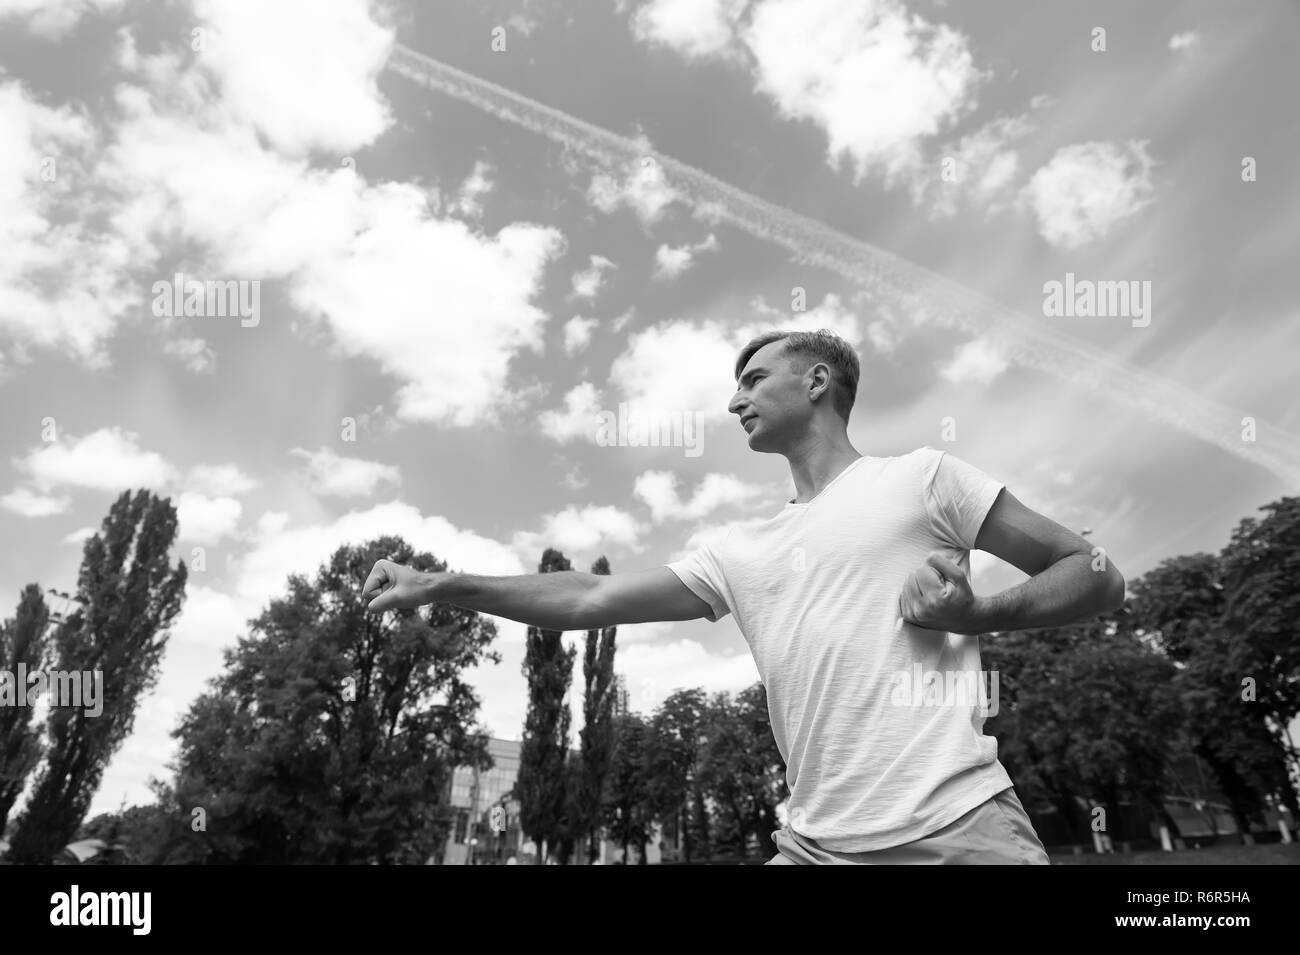 workout of man punching sunny outdoor on blue sky, sport and fitness - Stock Image